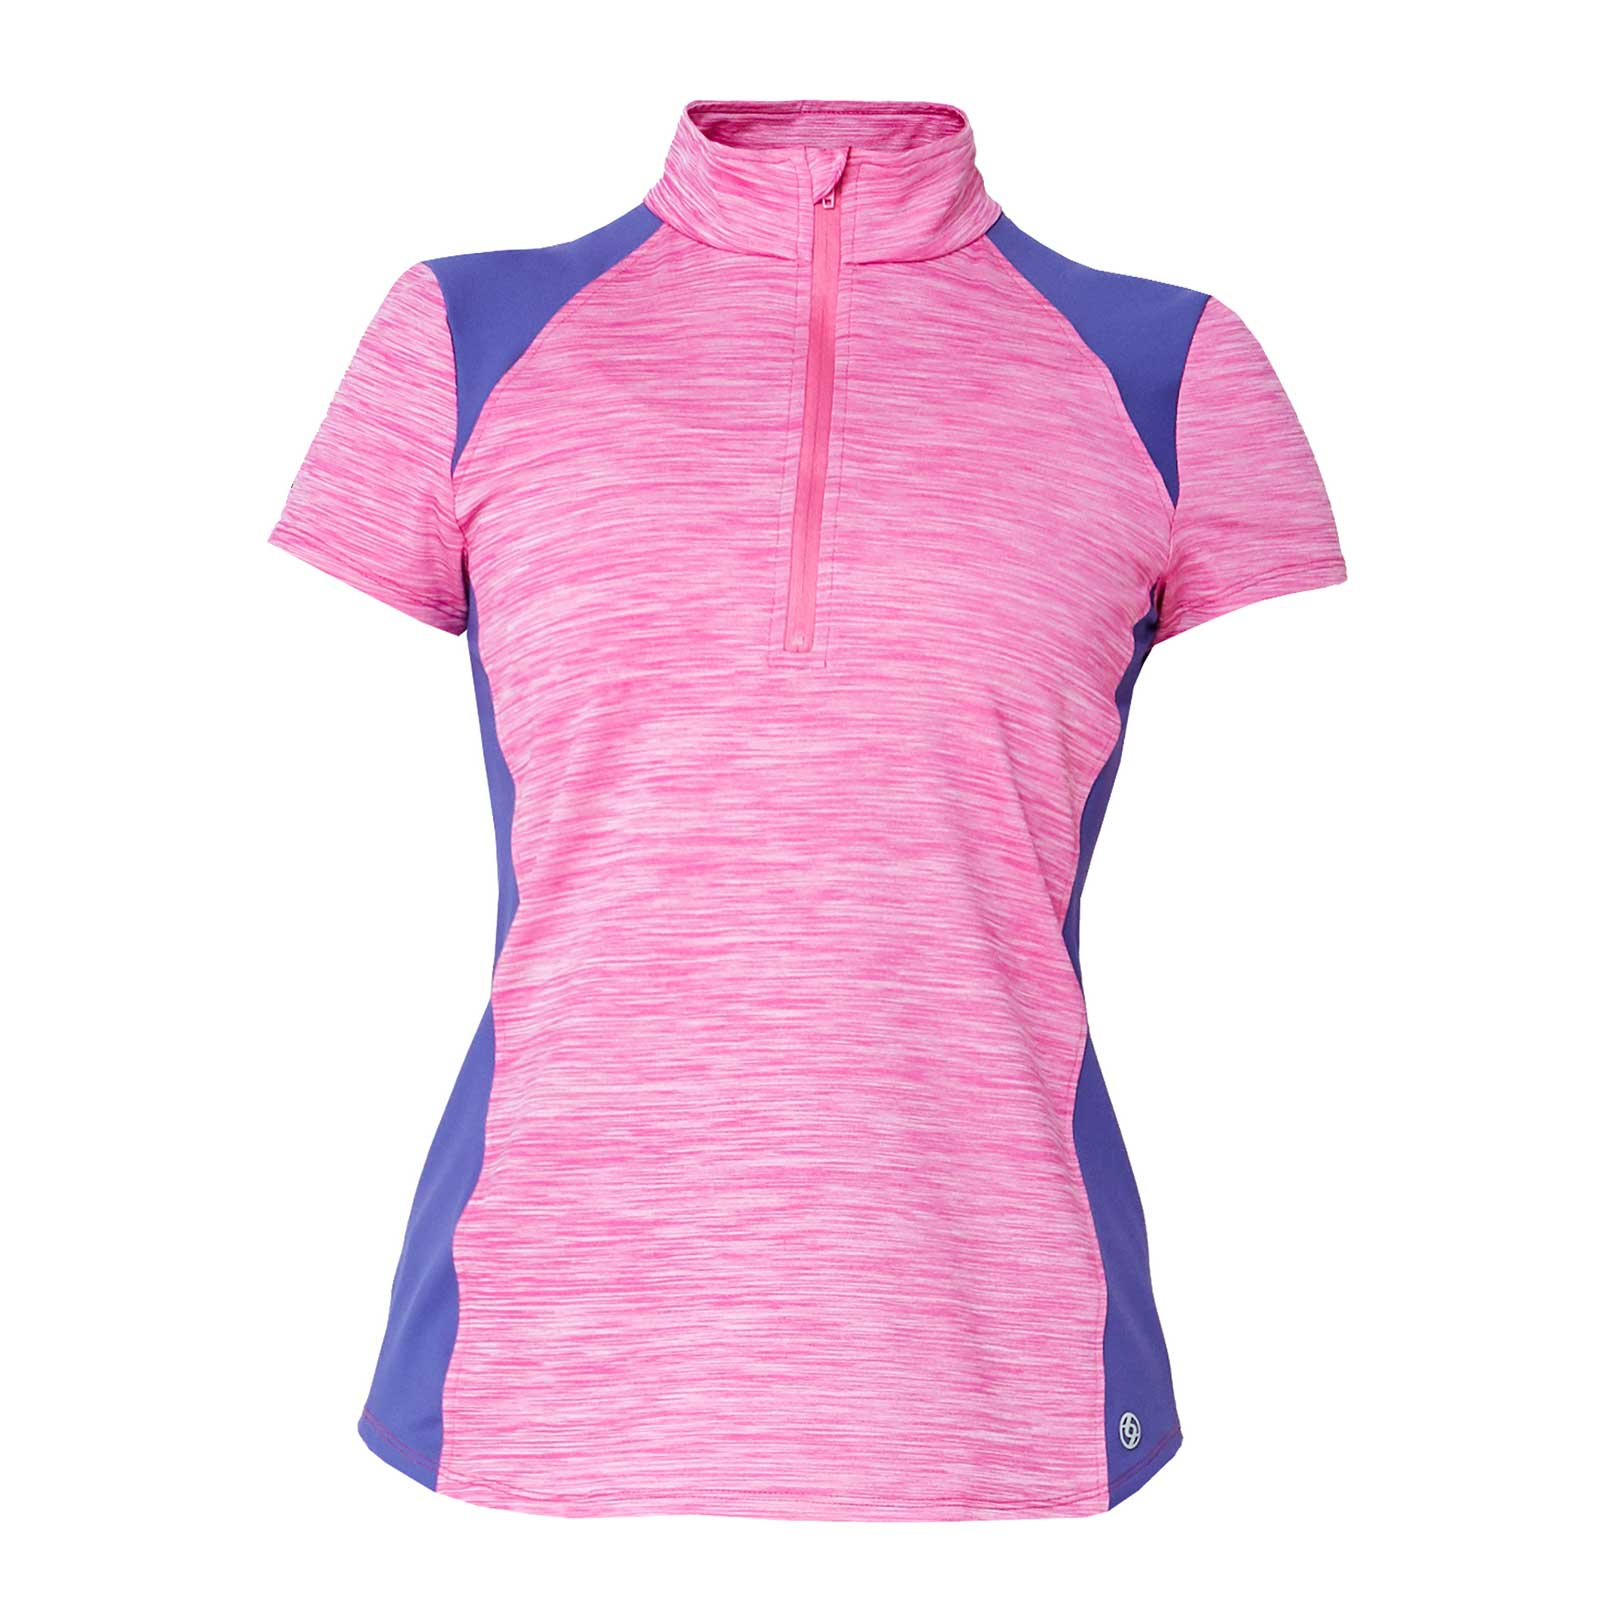 Lija Women's Apex Links 1/4 Zip Polo